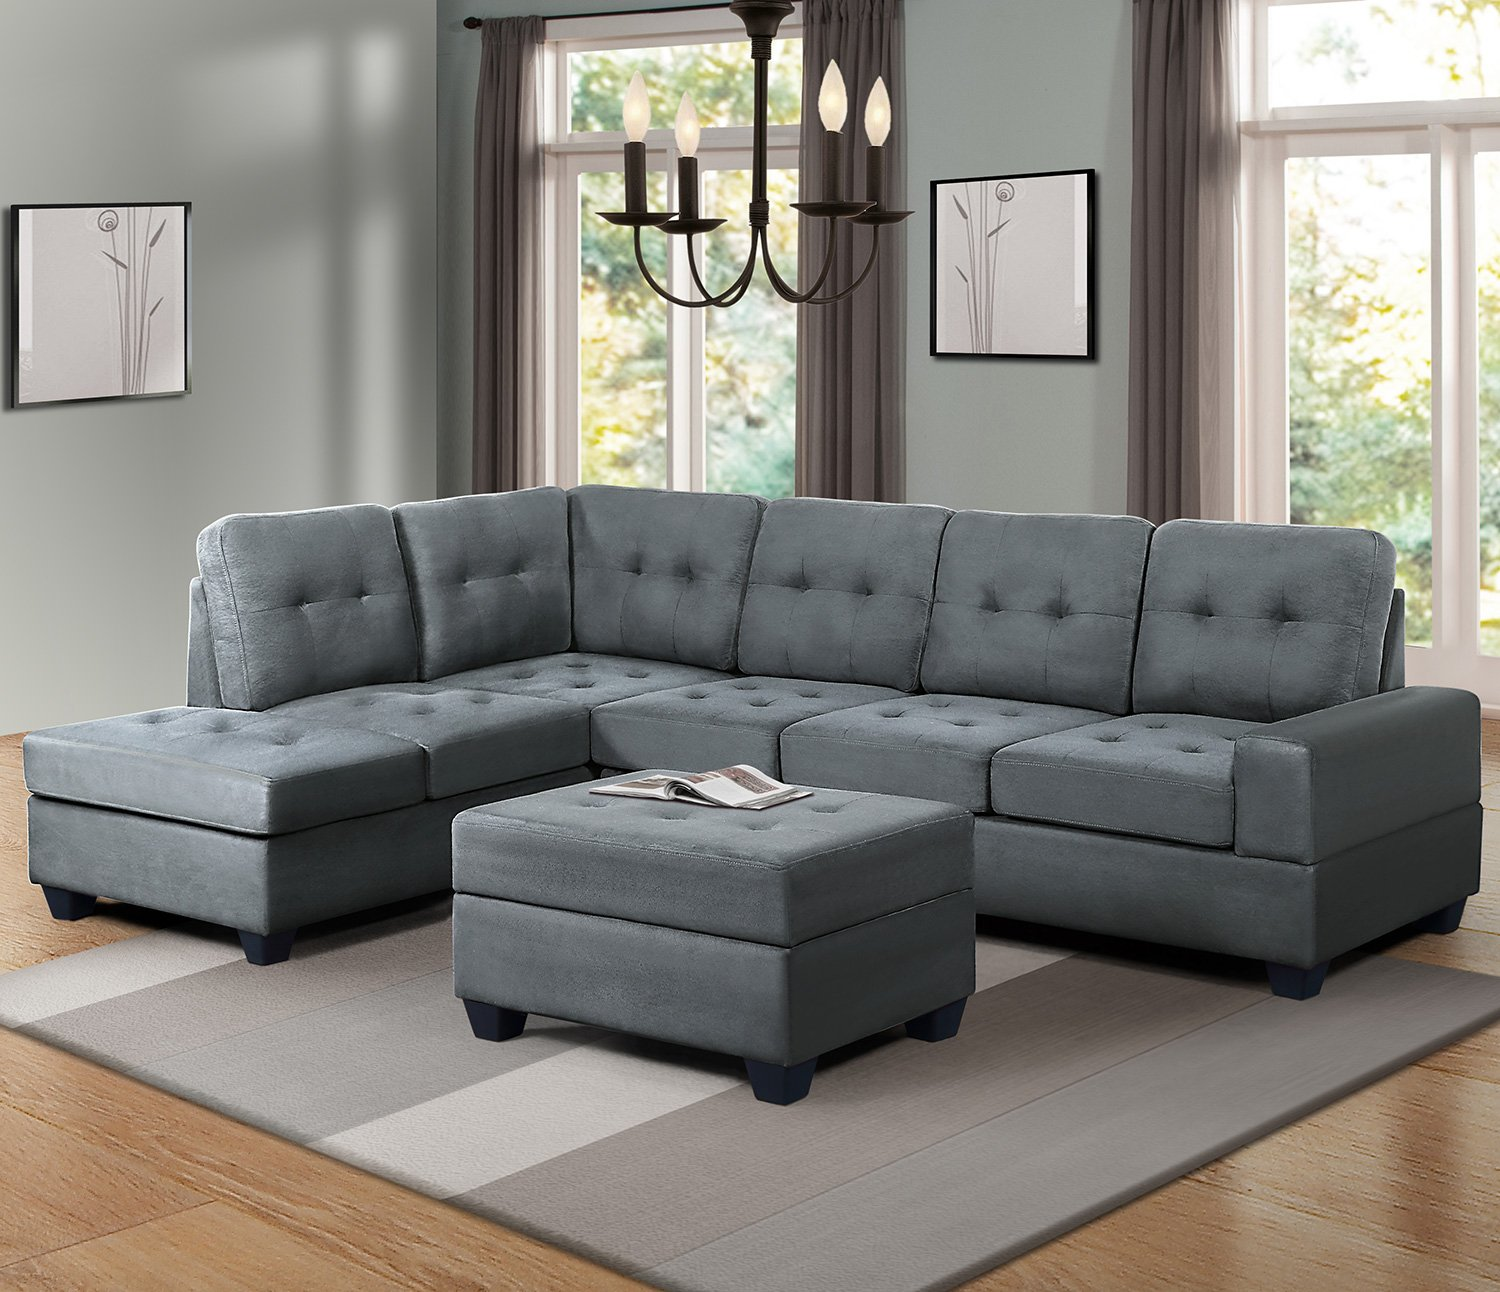 Harper&Bright Designs 3-piece Sectional Sofa With Cup